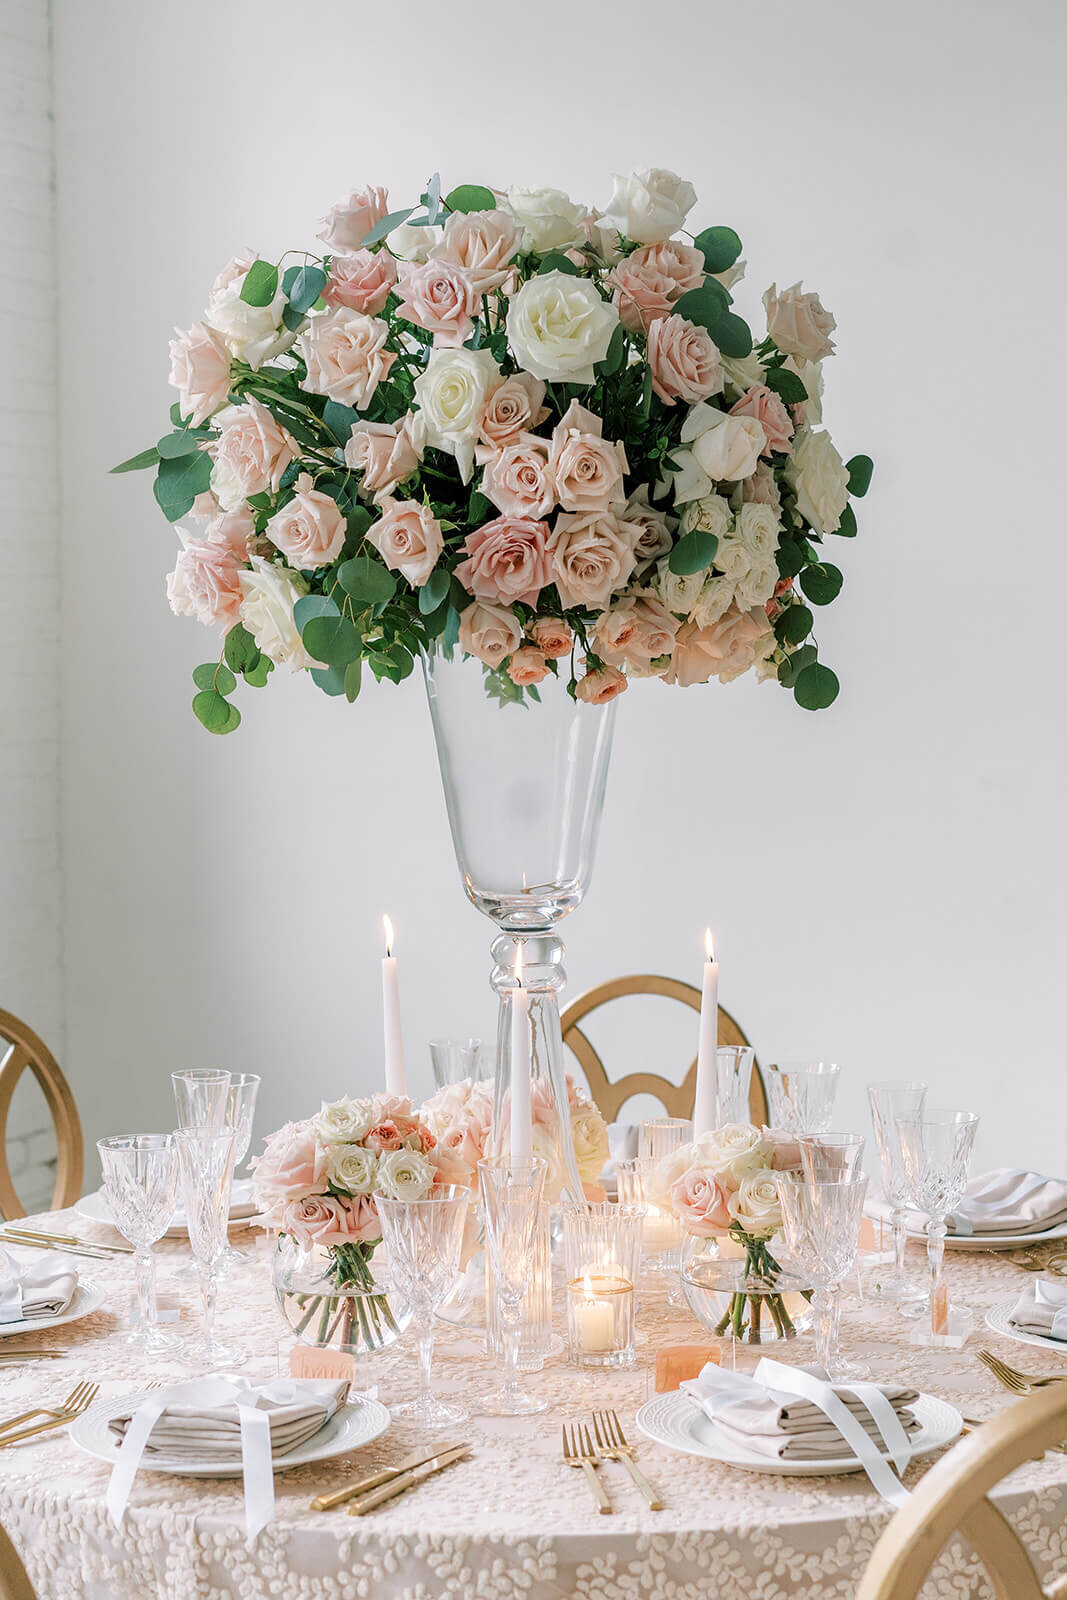 White-blush-wedding-reception-tall-centerpiece-portfolio-klassy-kreations